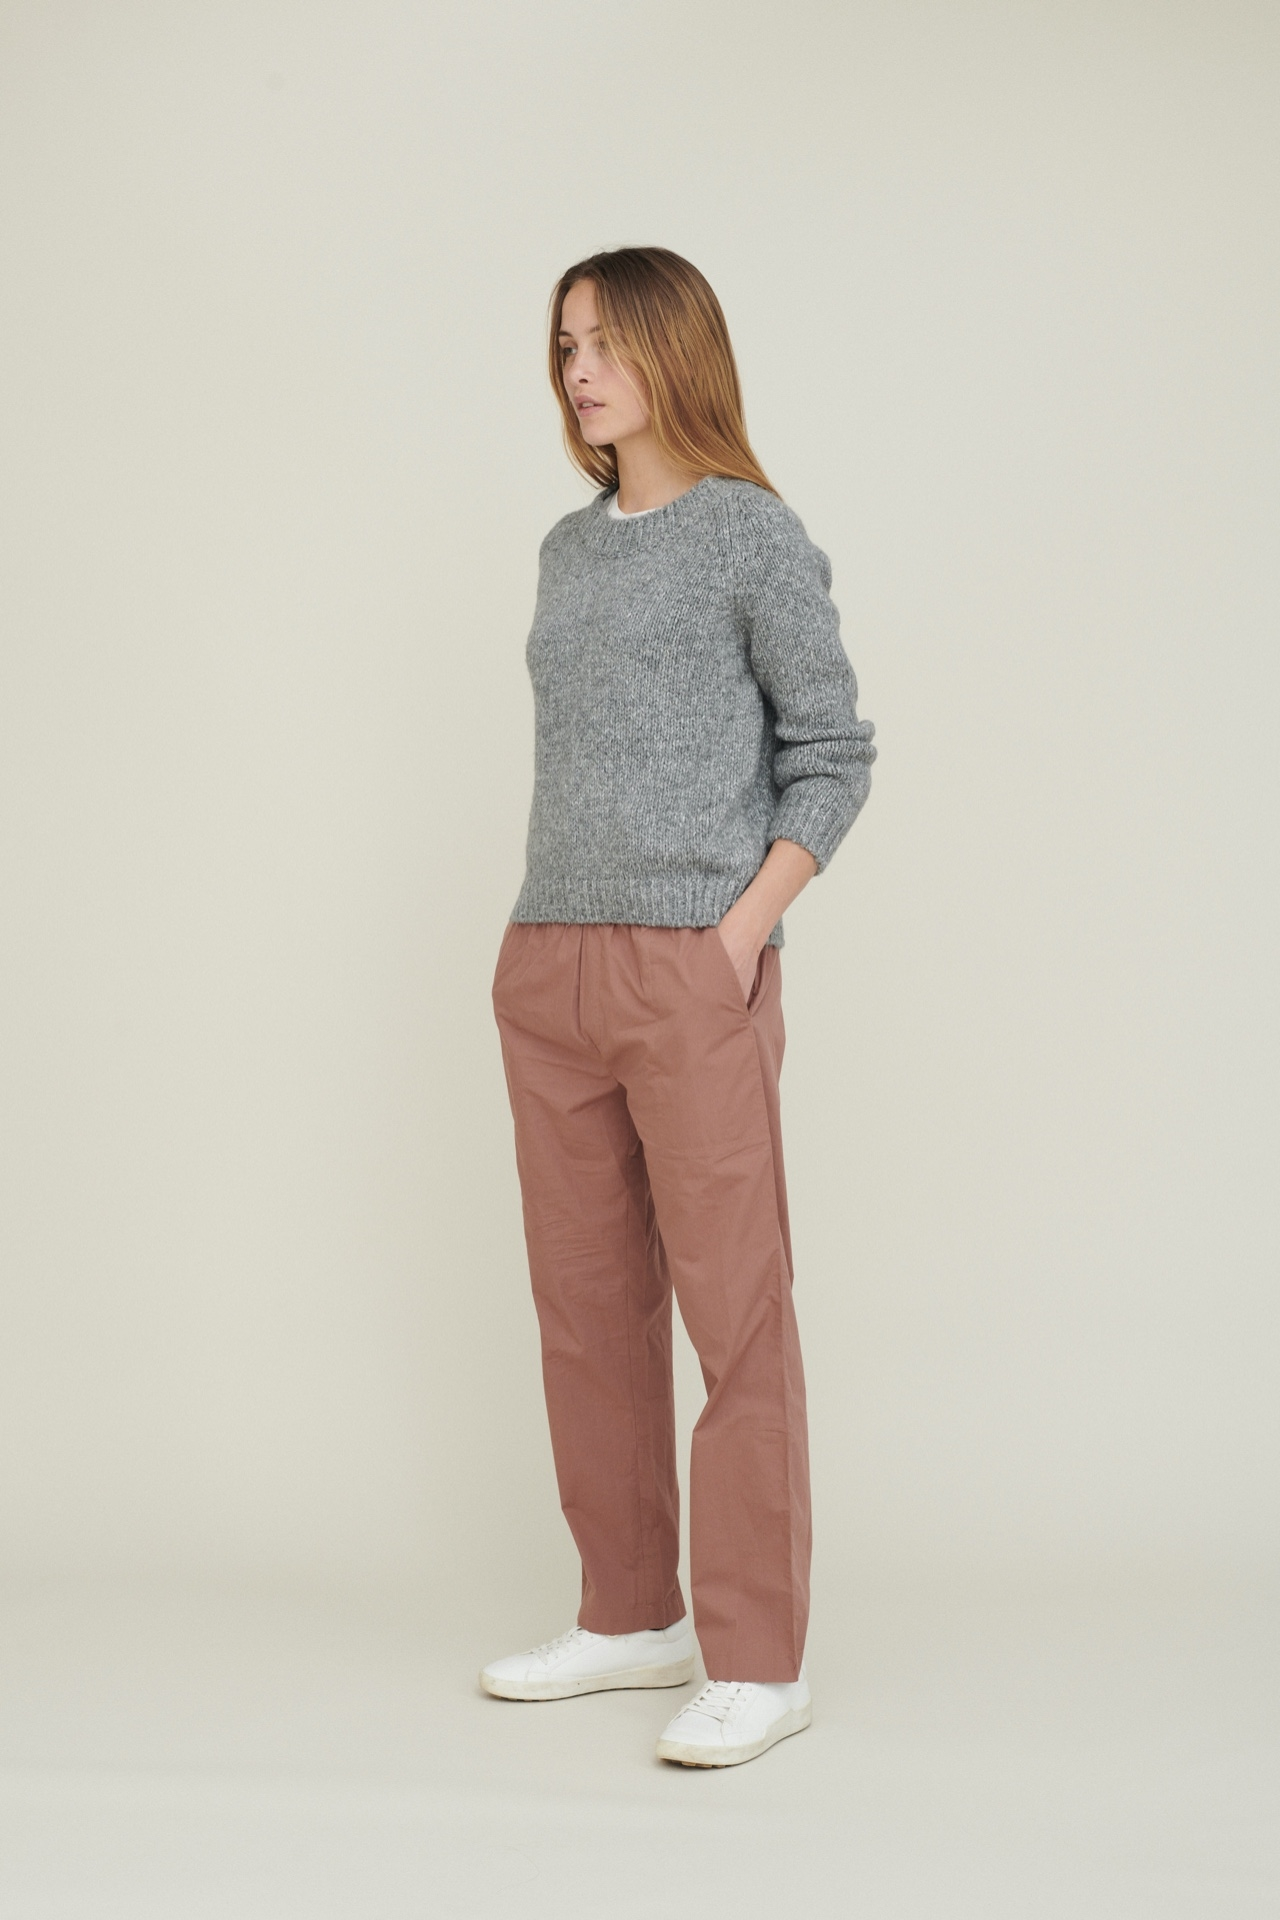 BASIC APPAREL Aliki Sweater Light Grey